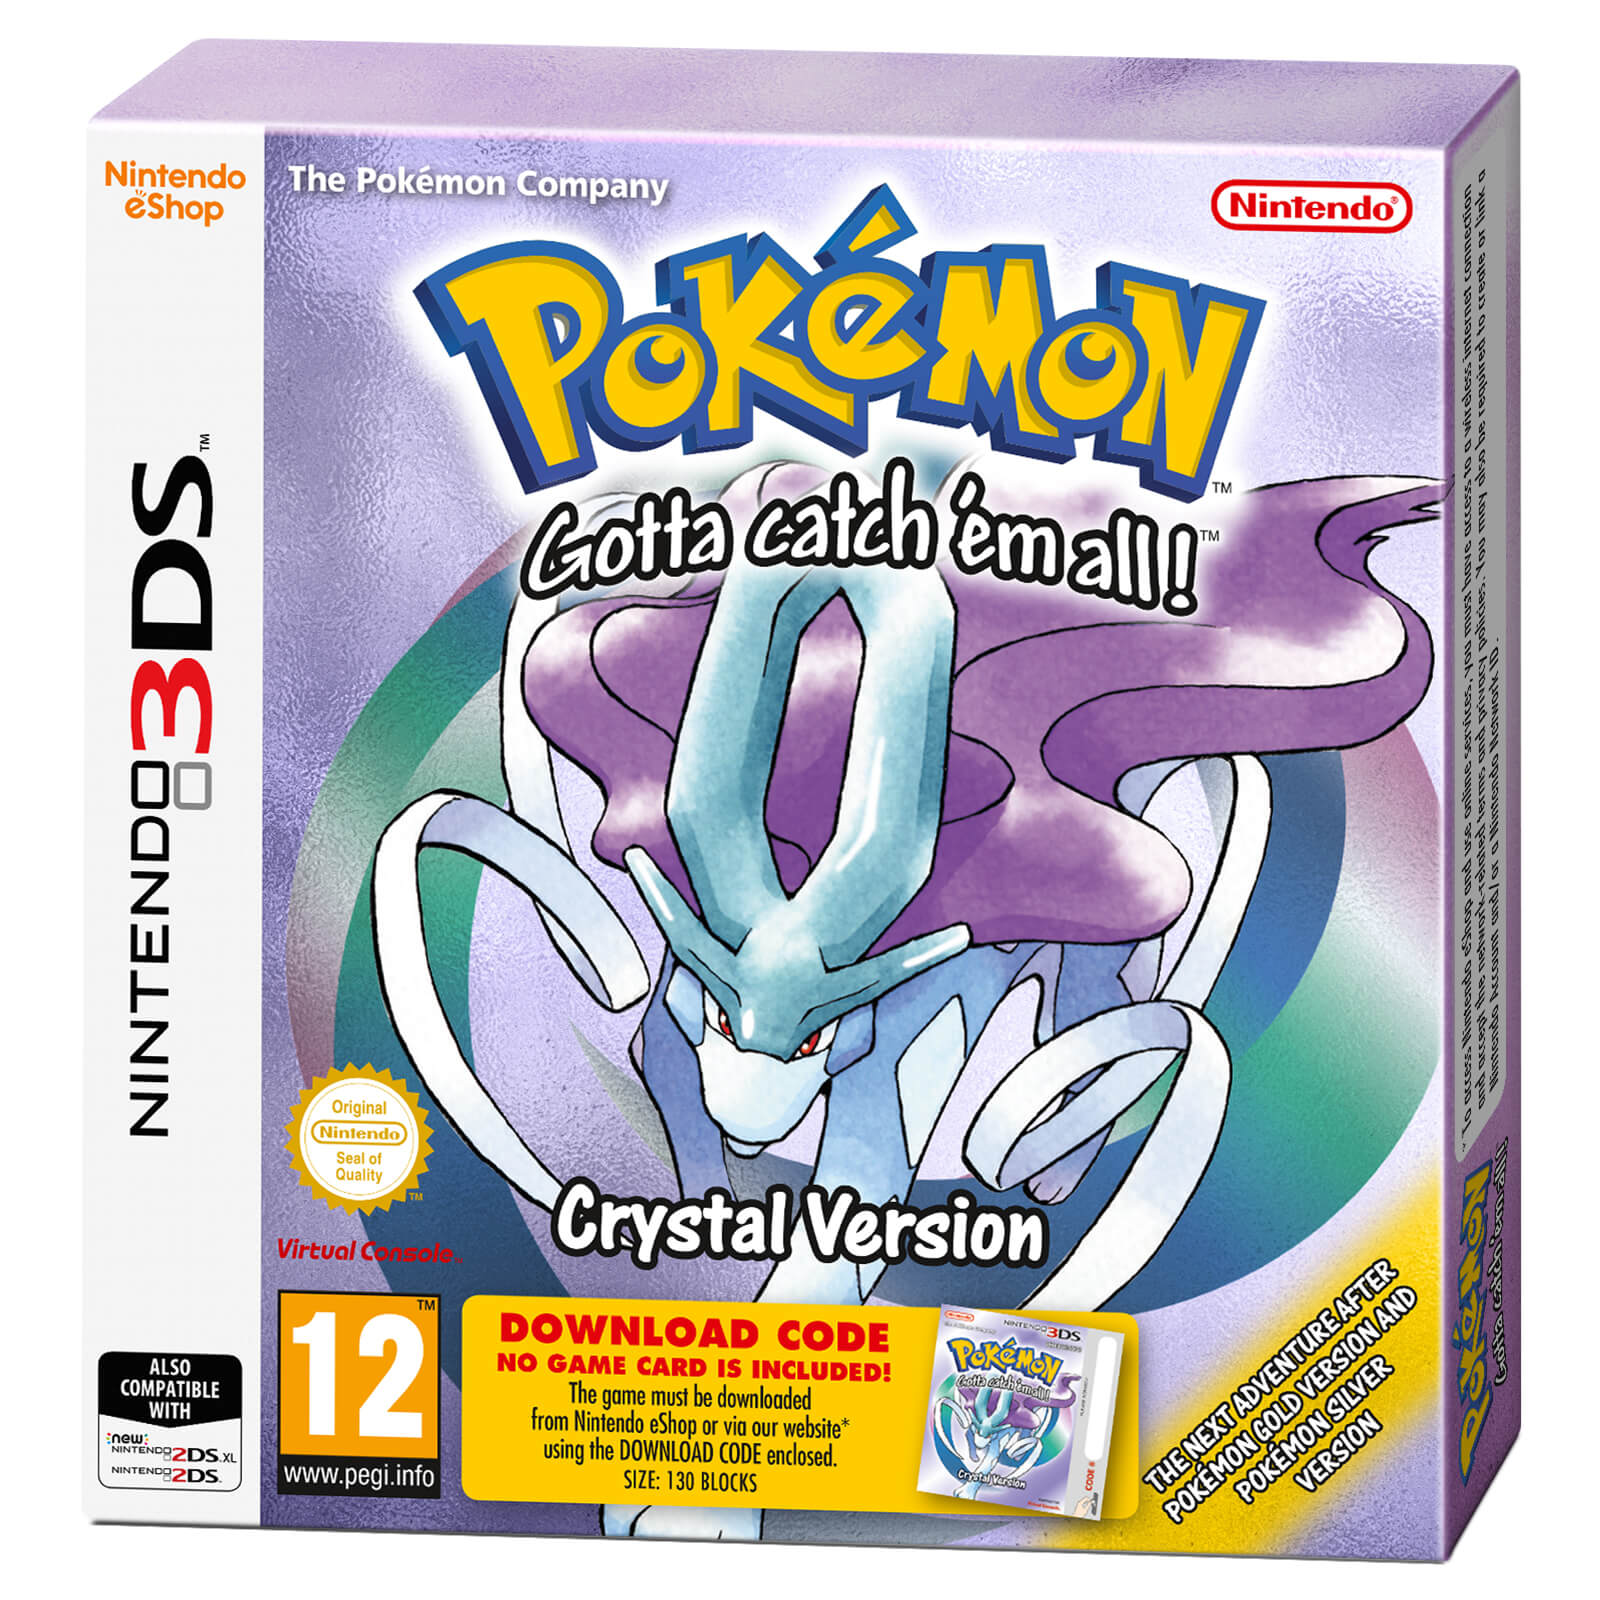 How to get celebi in your eshop copy of pokémon crystal.